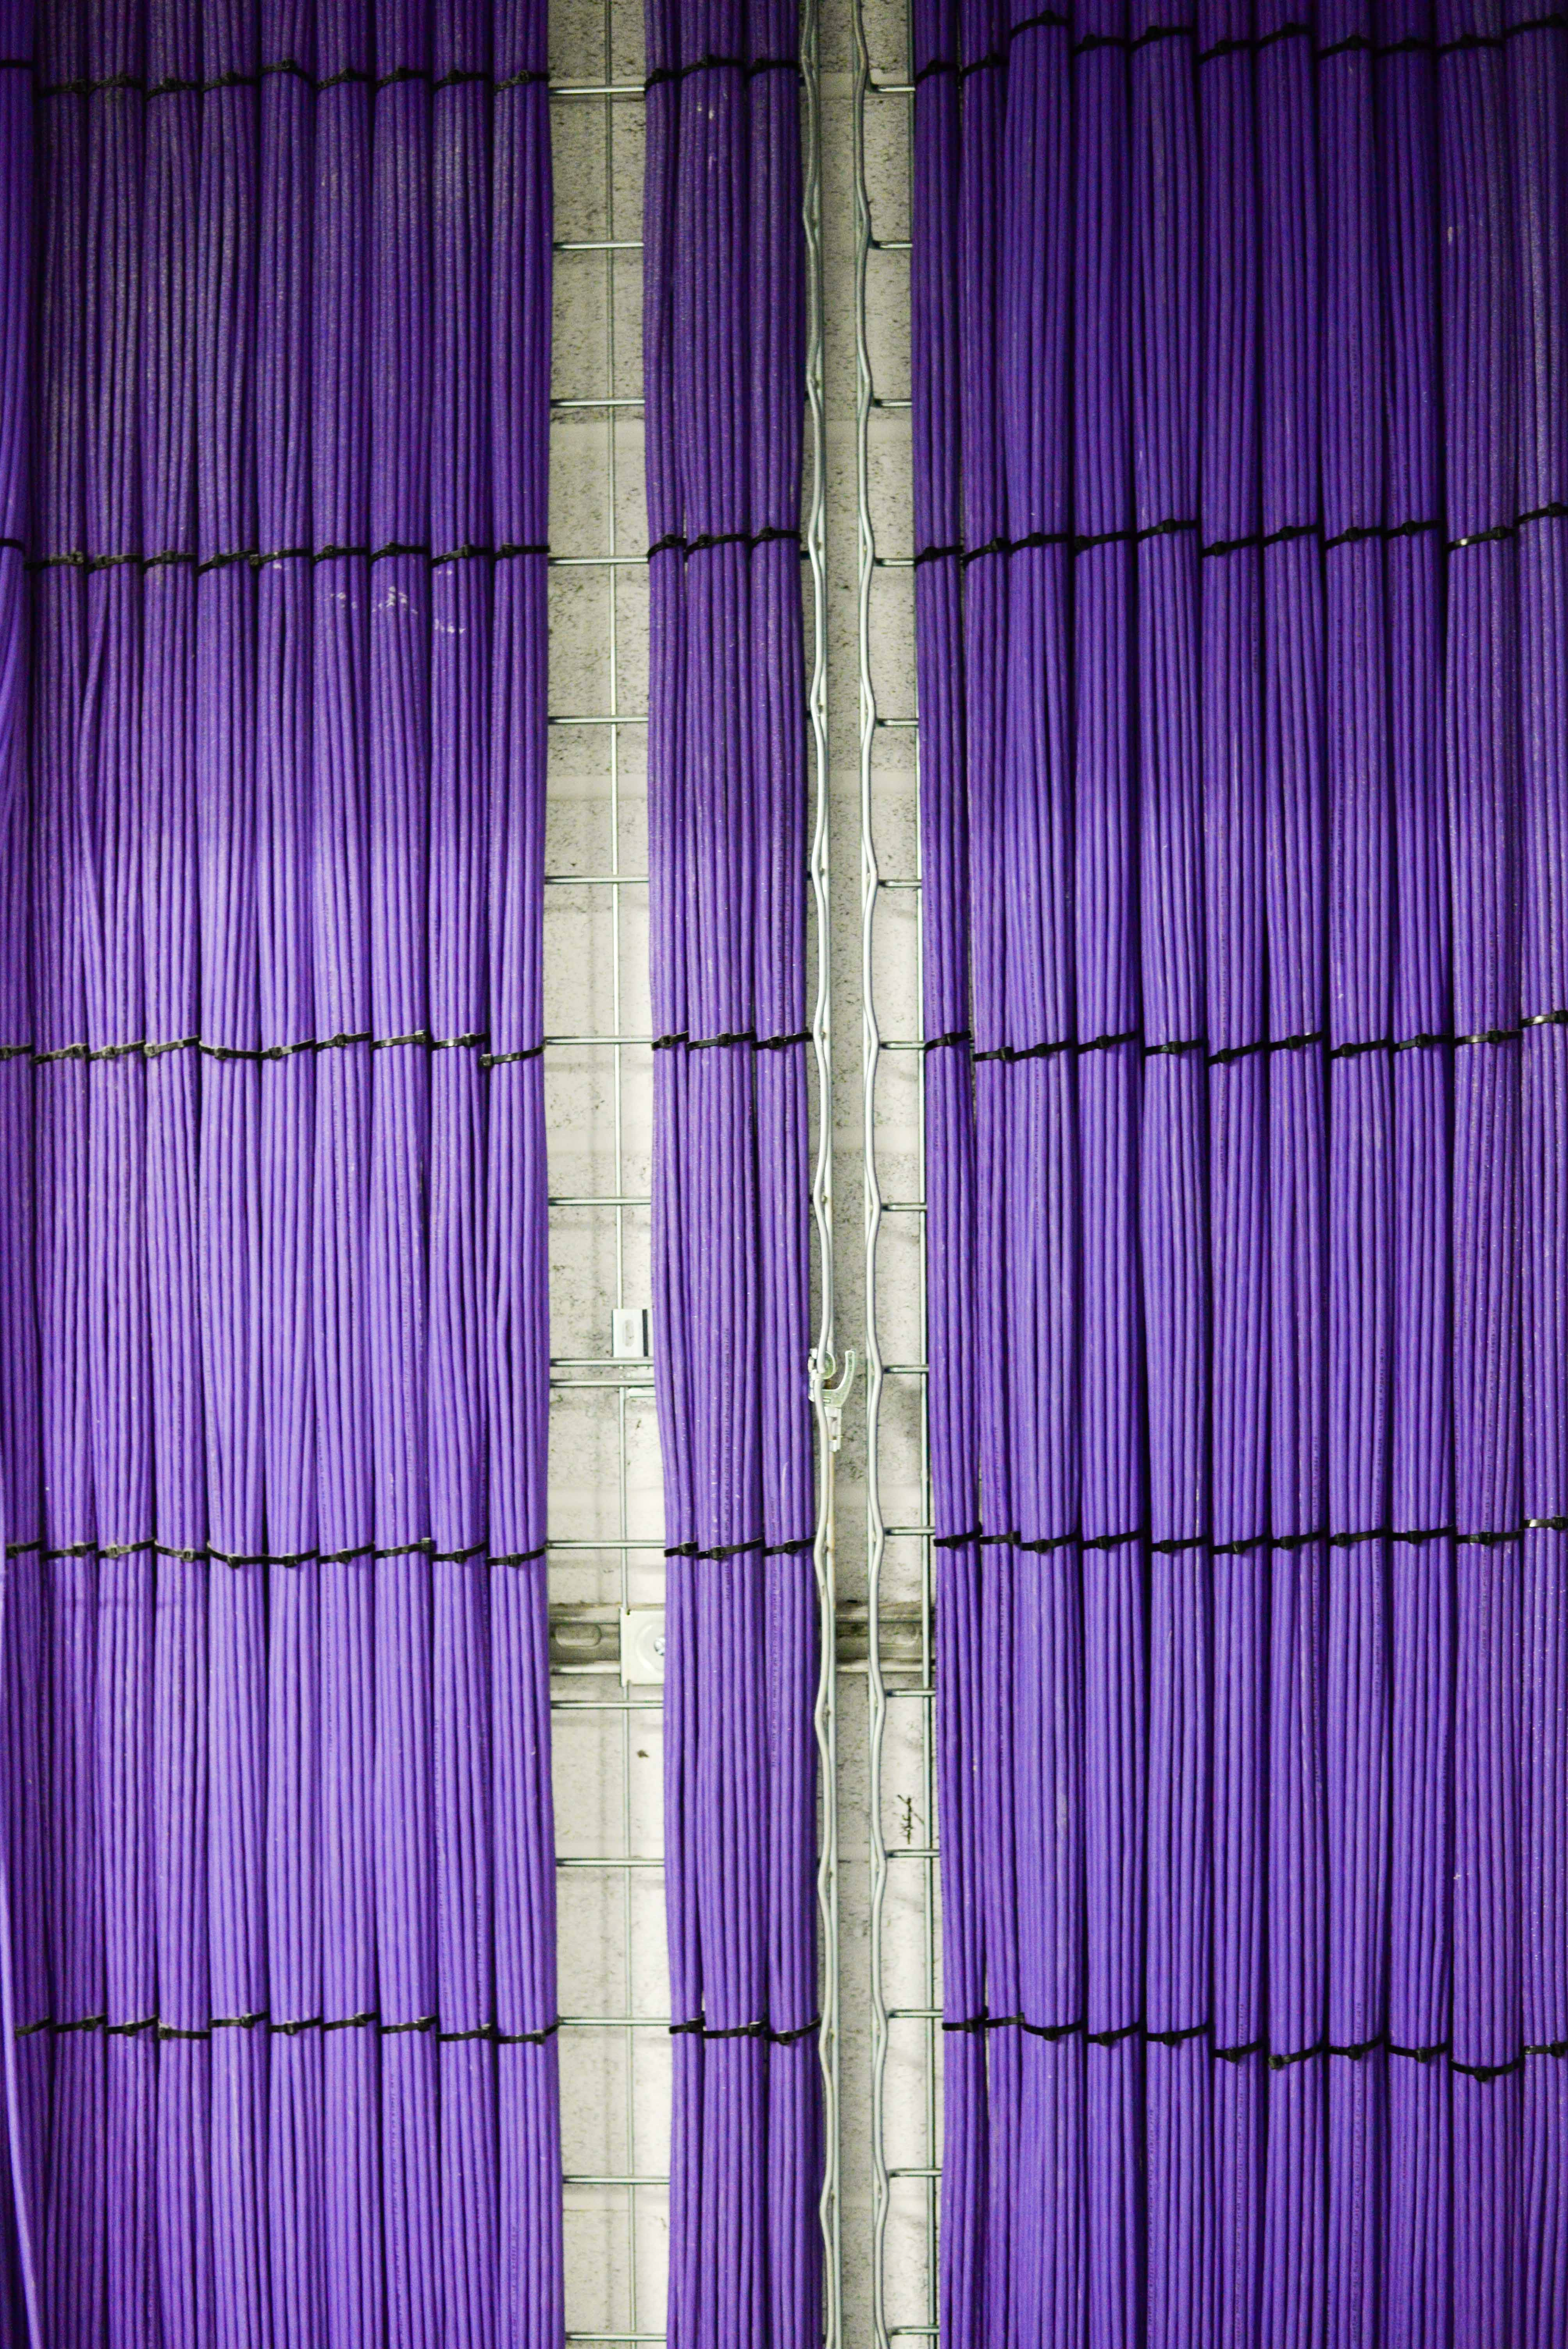 Image of purple pipes on a wall